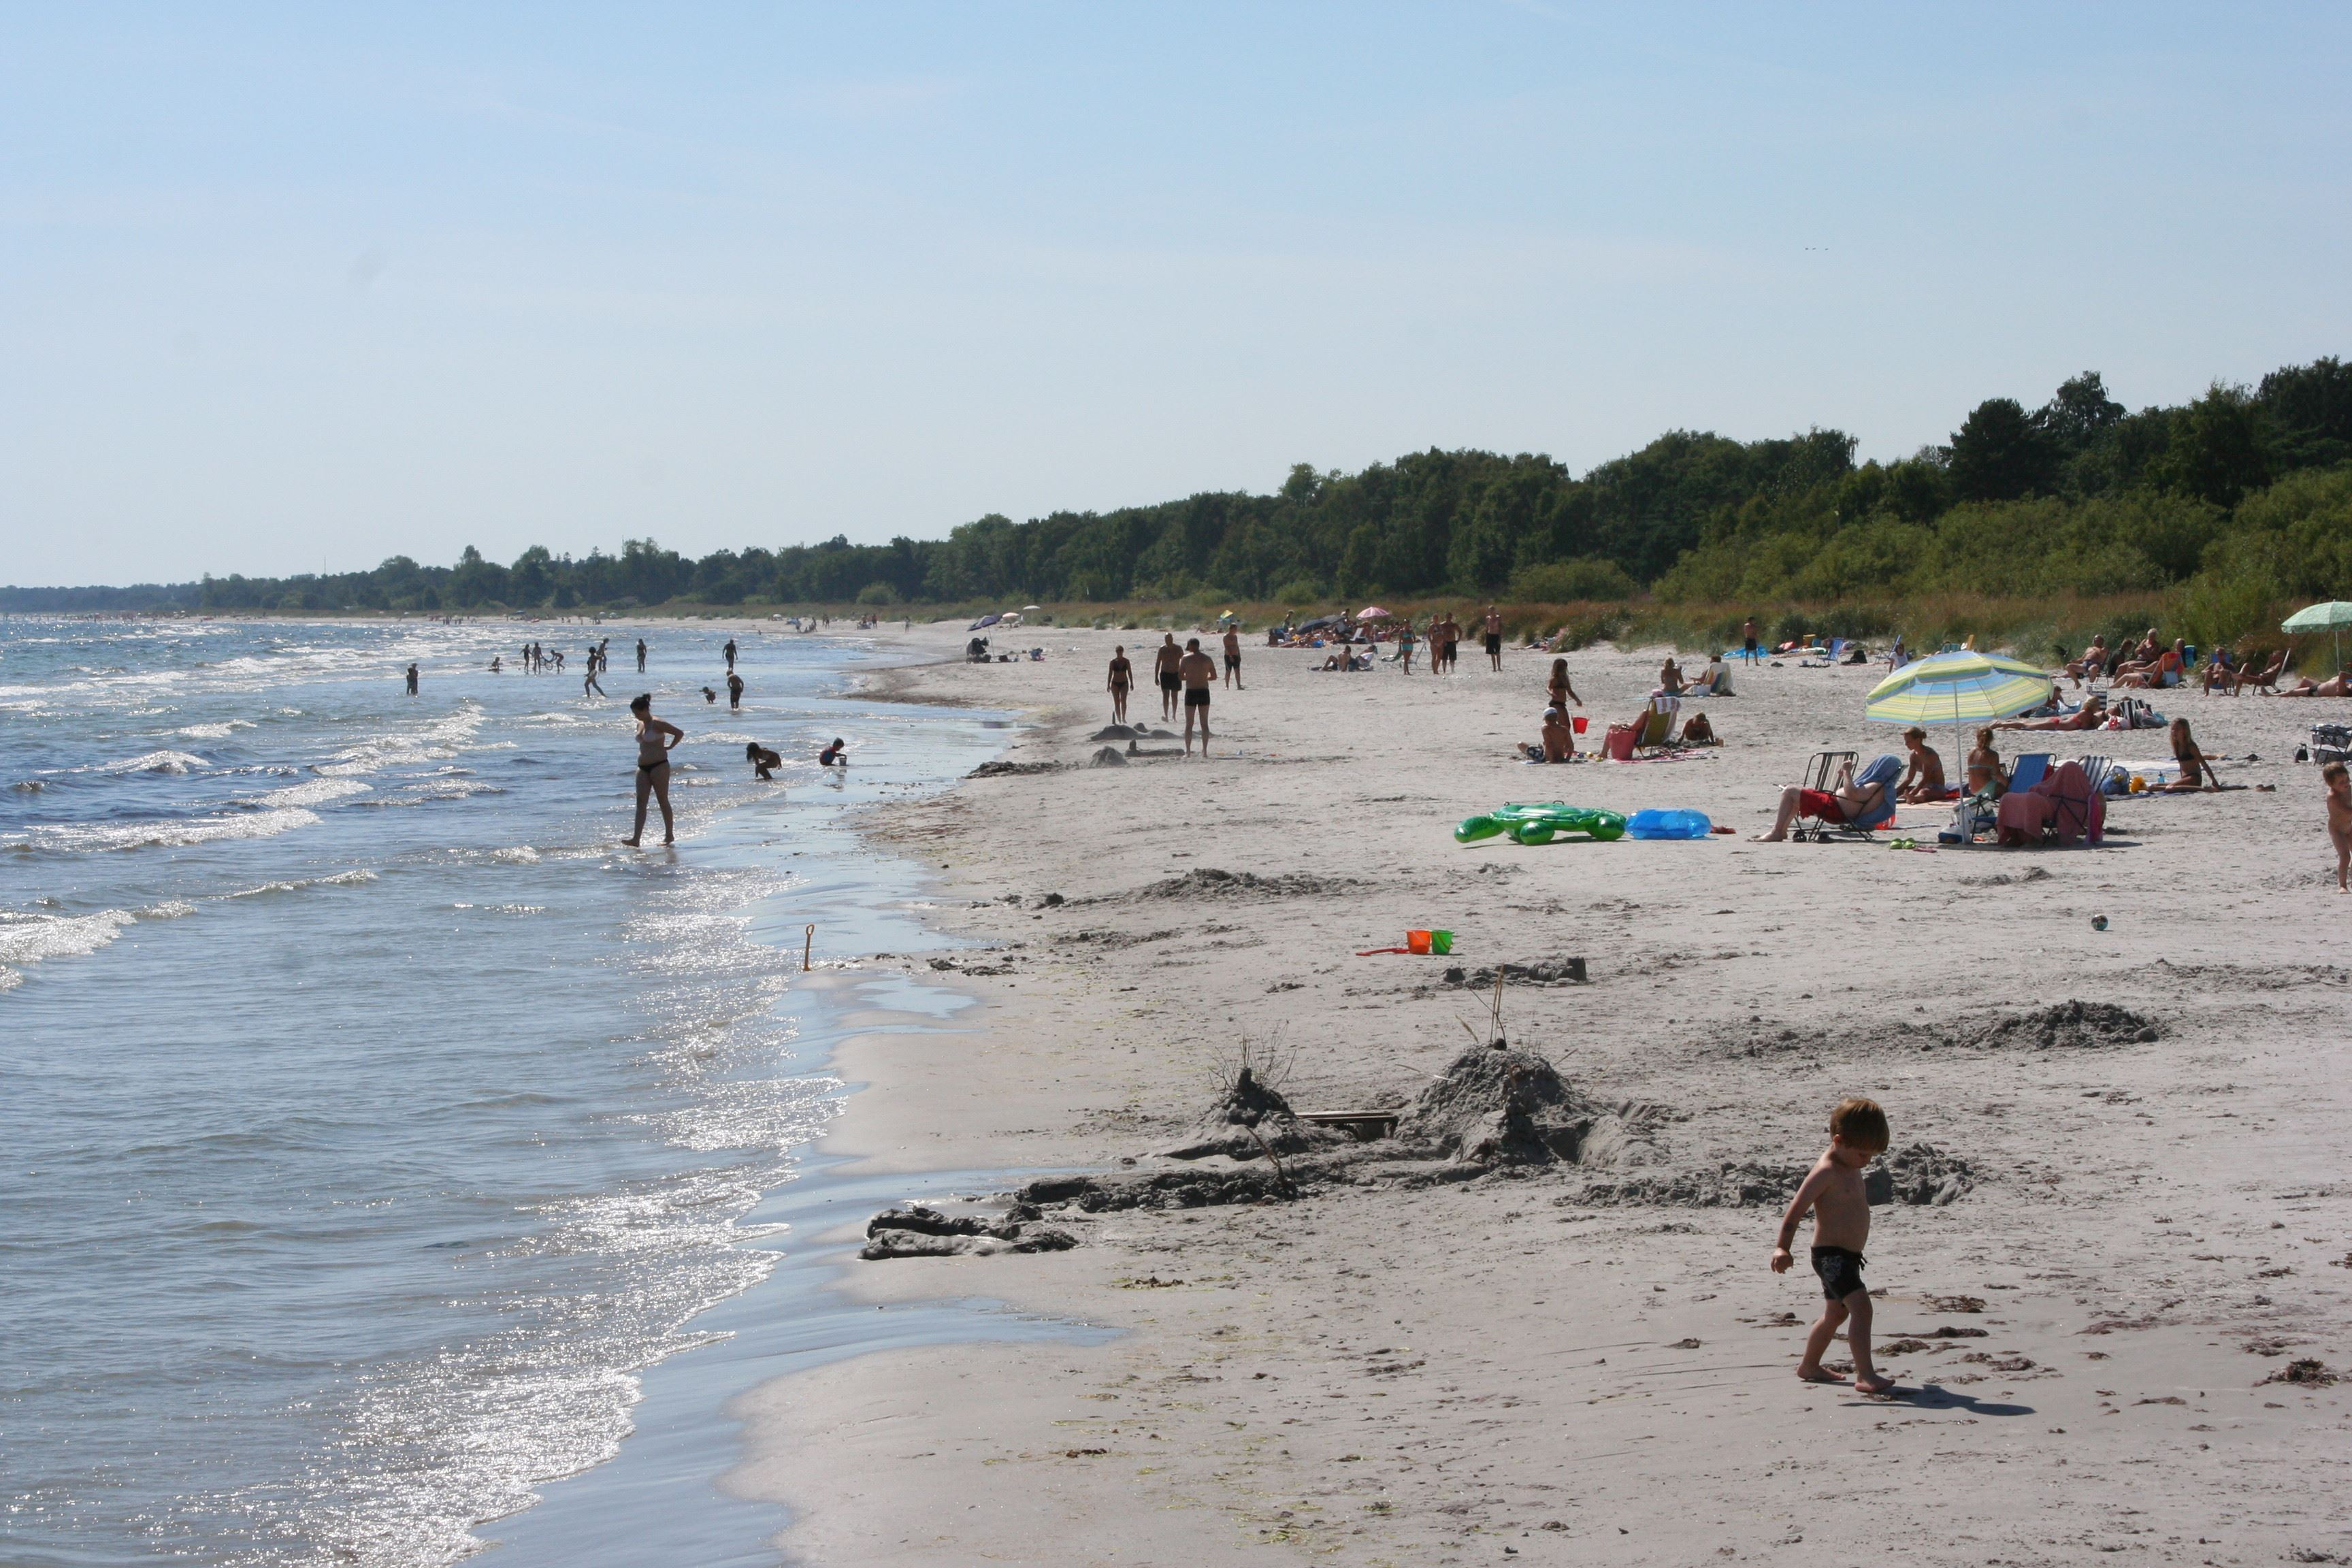 Gun Andersson, The beach is great for kids with shallow and friendly waters.